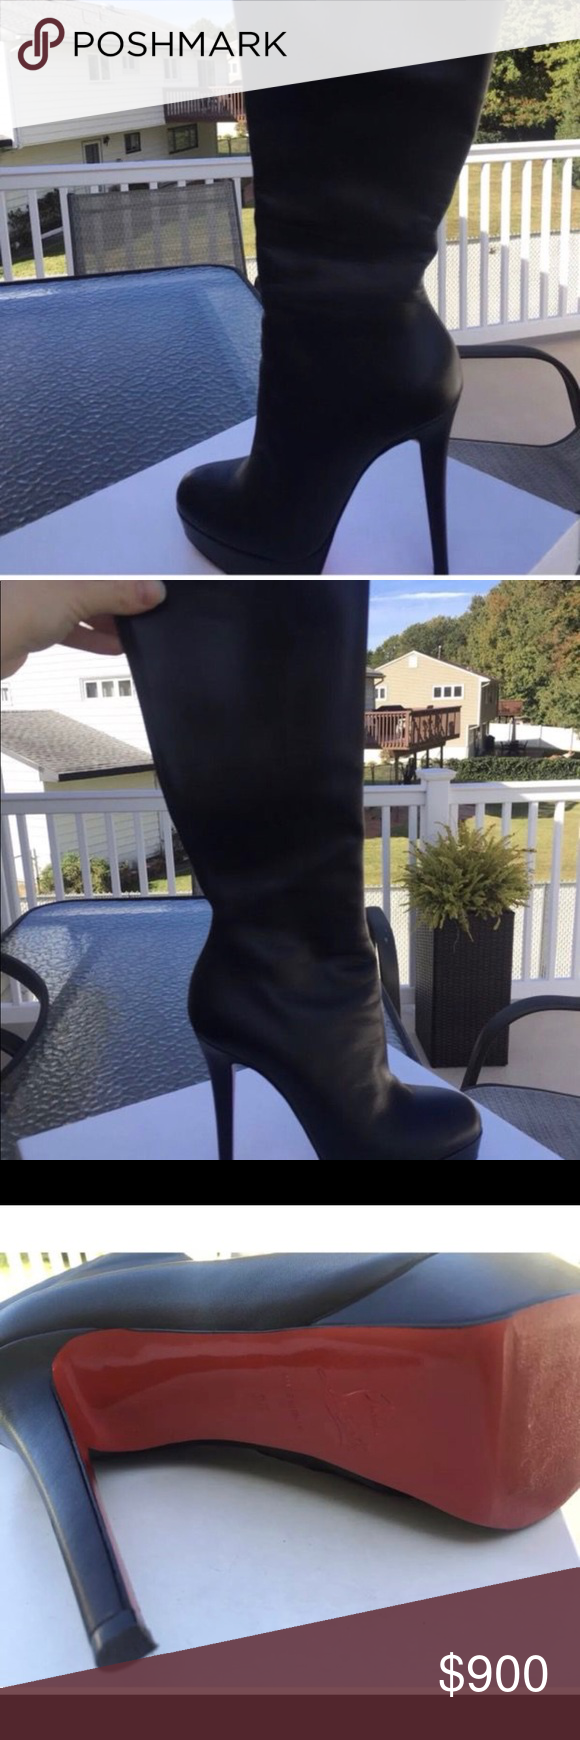 reputable site cb16f 2b176 Christian Louboutin botalili tall boot size 36 Selling my ...